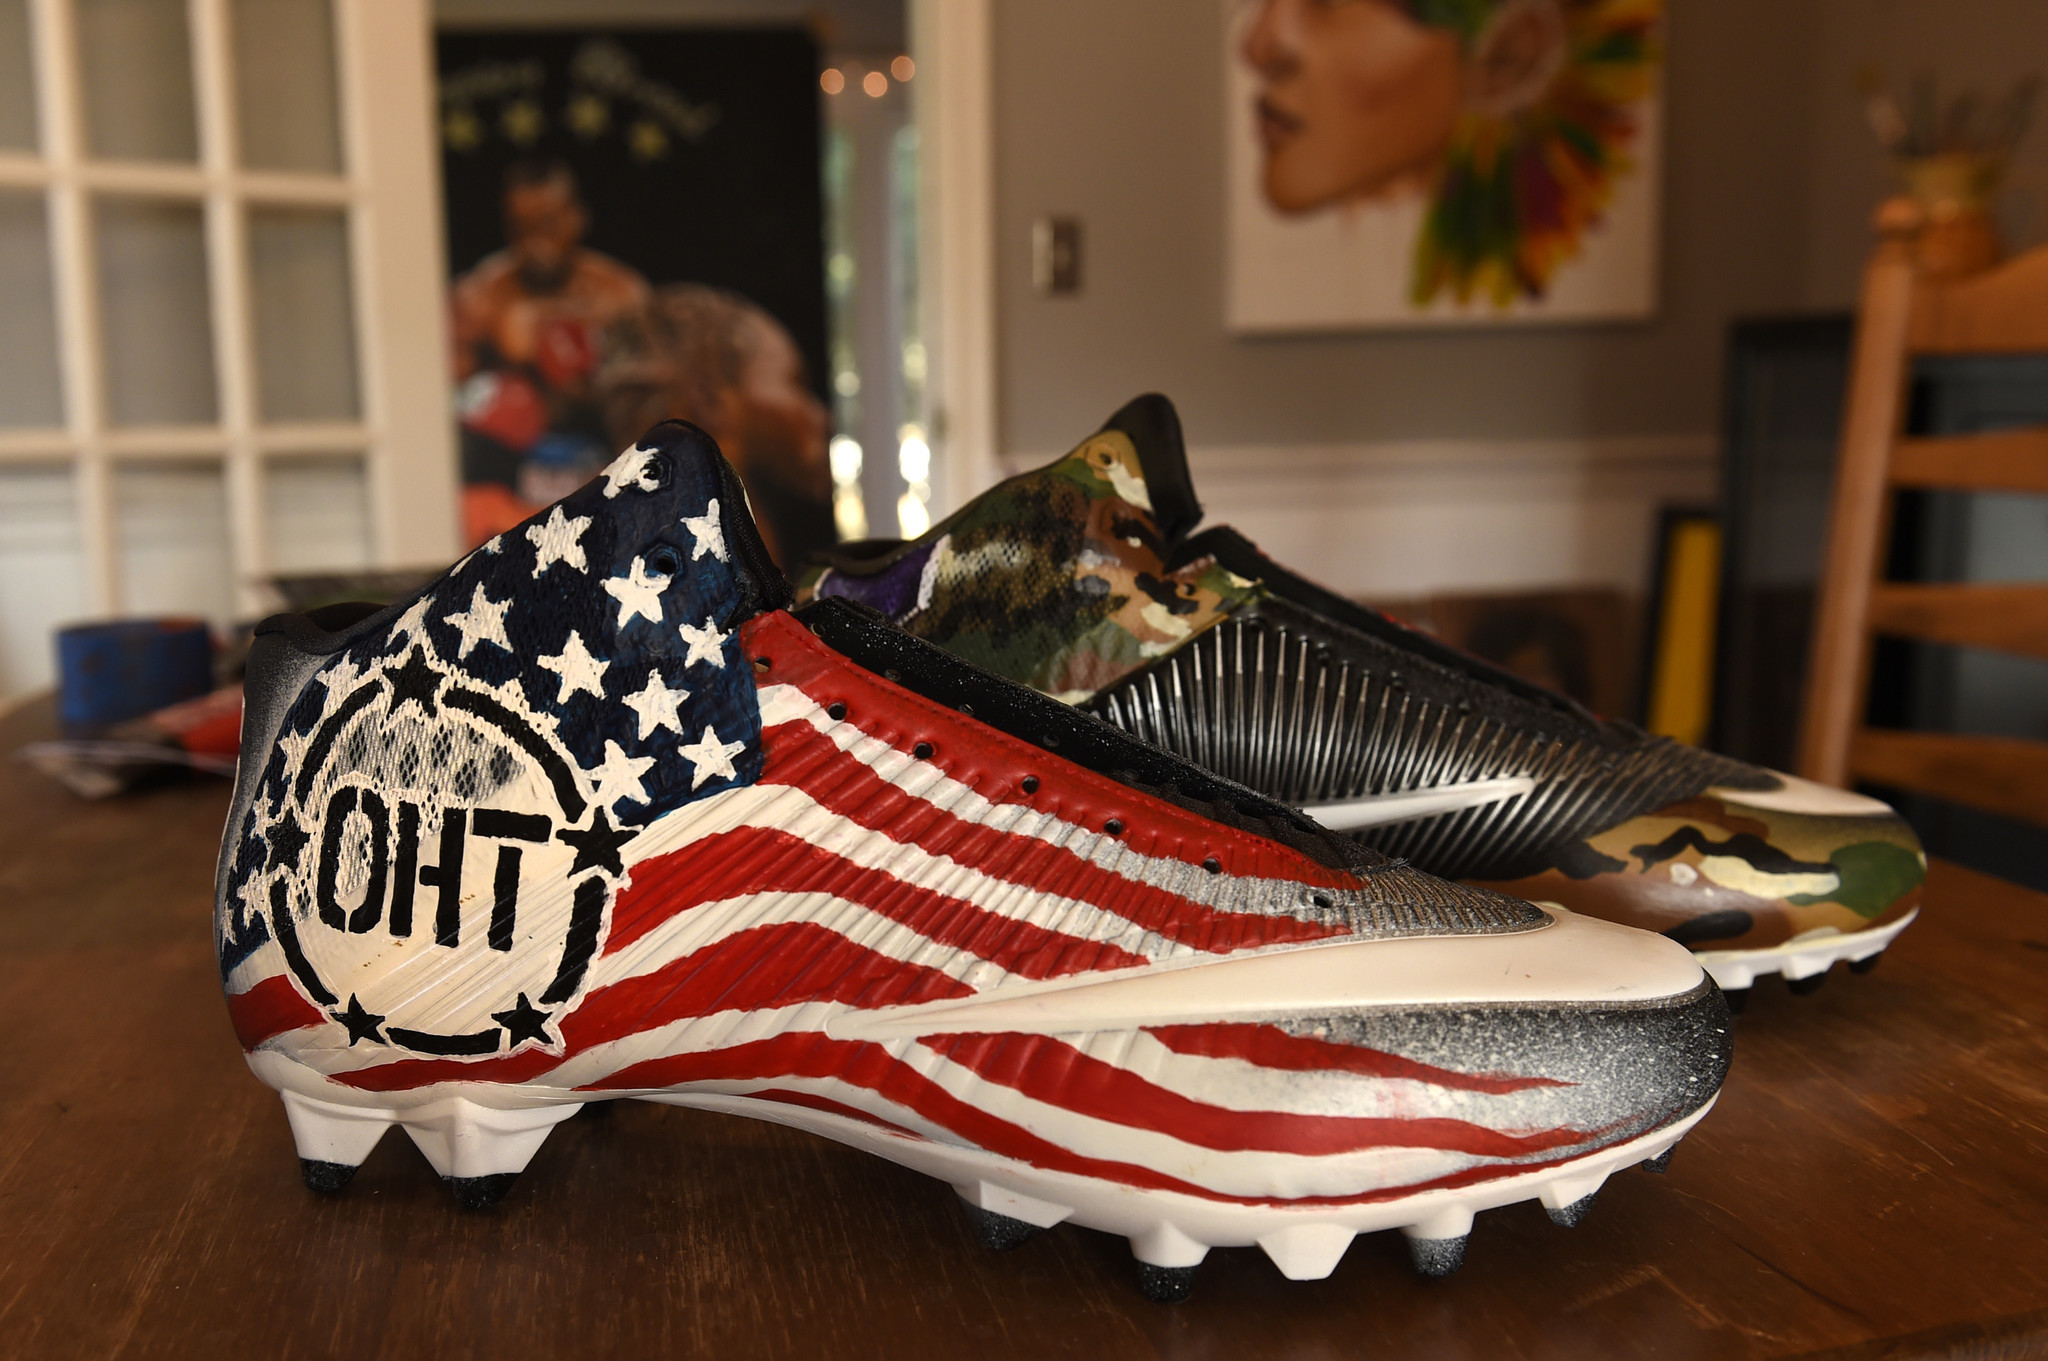 West Hartford Artist Creates Custom Cleats For NFL Players - Courant ...